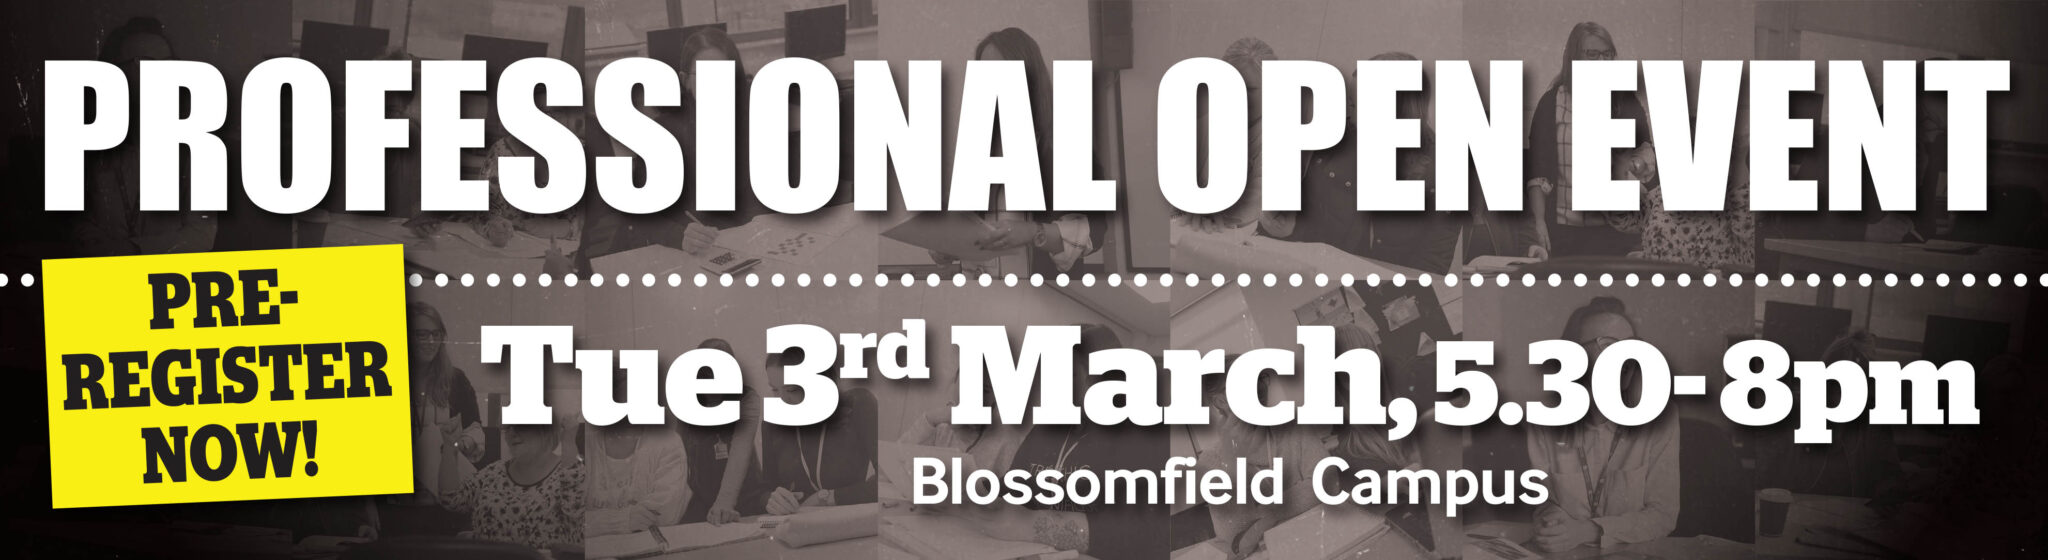 Professional Open Event Tuesday 3rd March 5:30-8pm Blossomfield Campus